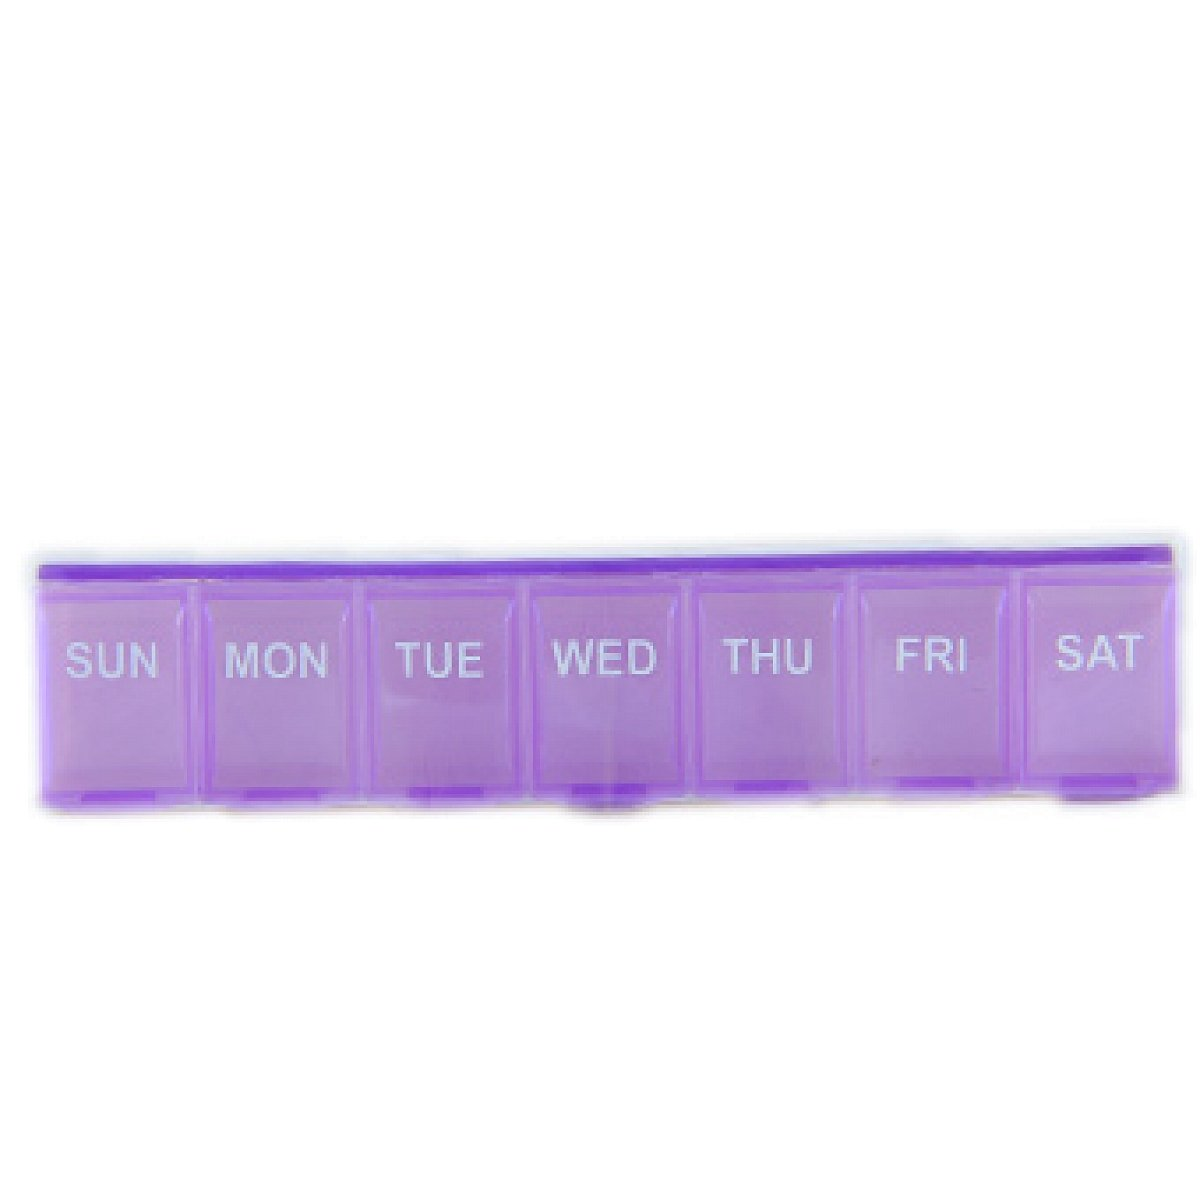 Once A Day - Weekly Tablet Organizer (OD)